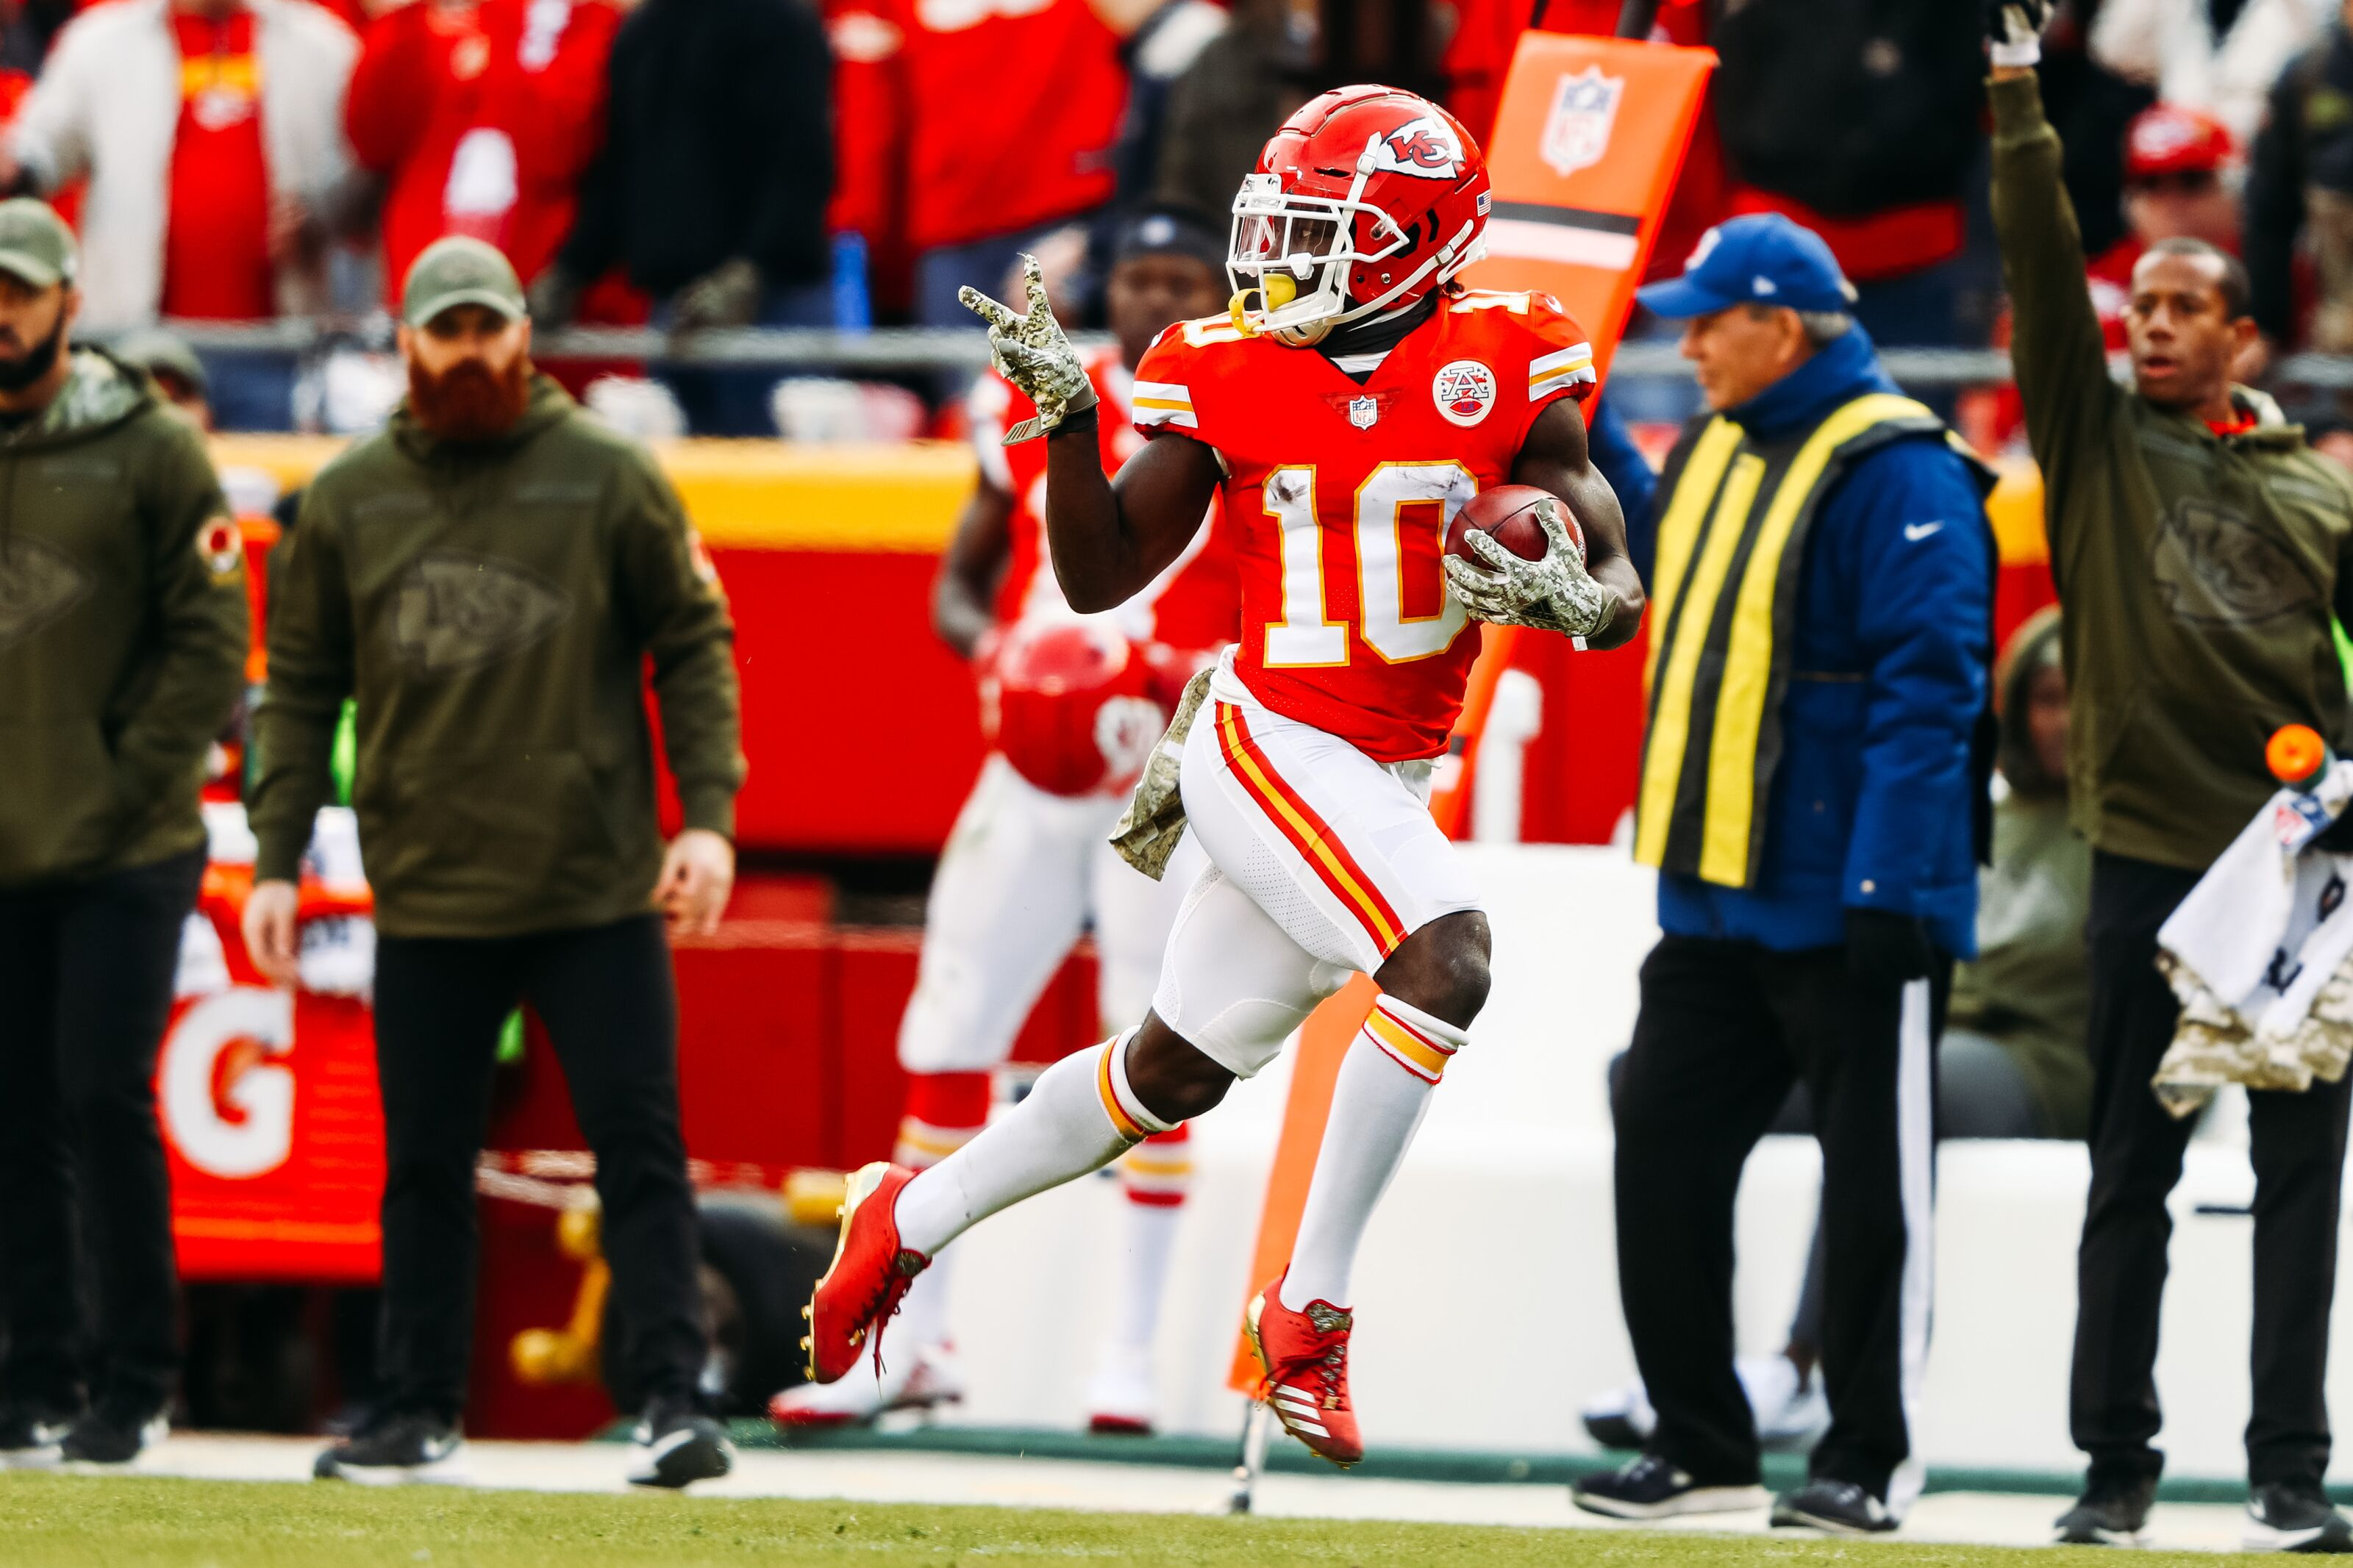 Tyreek Hill, Mitchell Schwartz expected to miss practice for Chiefs